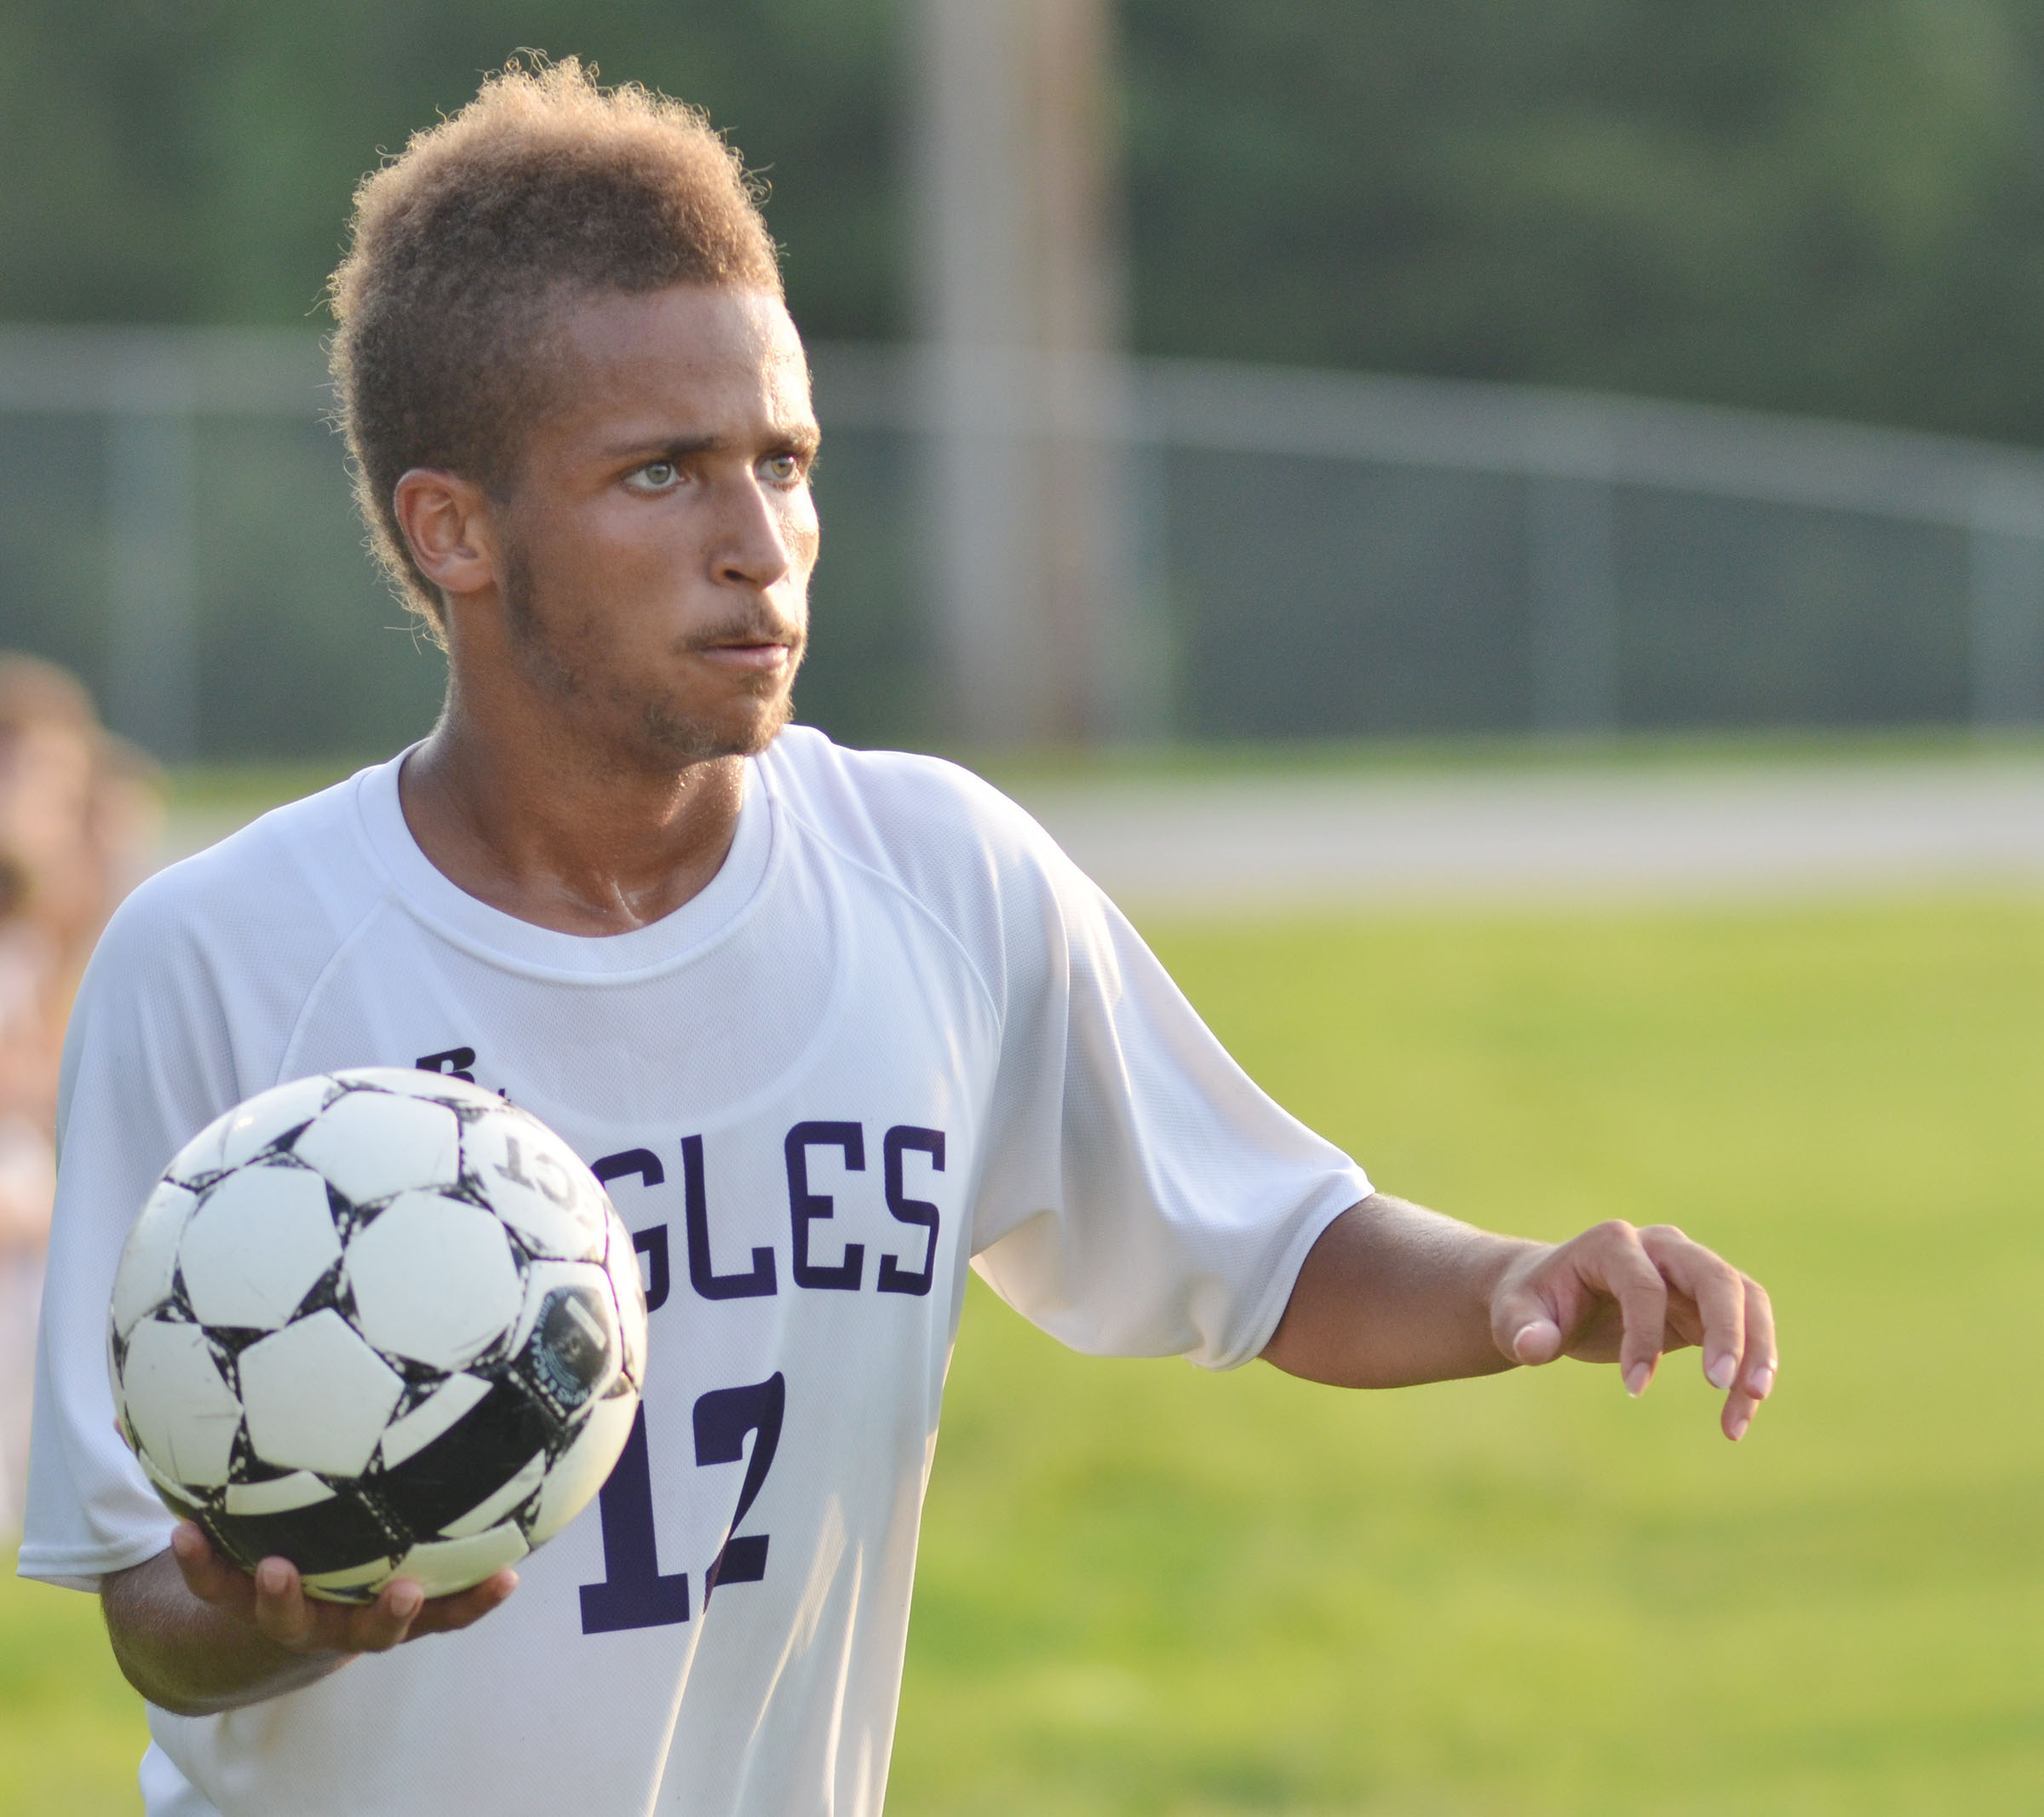 CHS junior Ethan Lay throws the ball to his teammates.